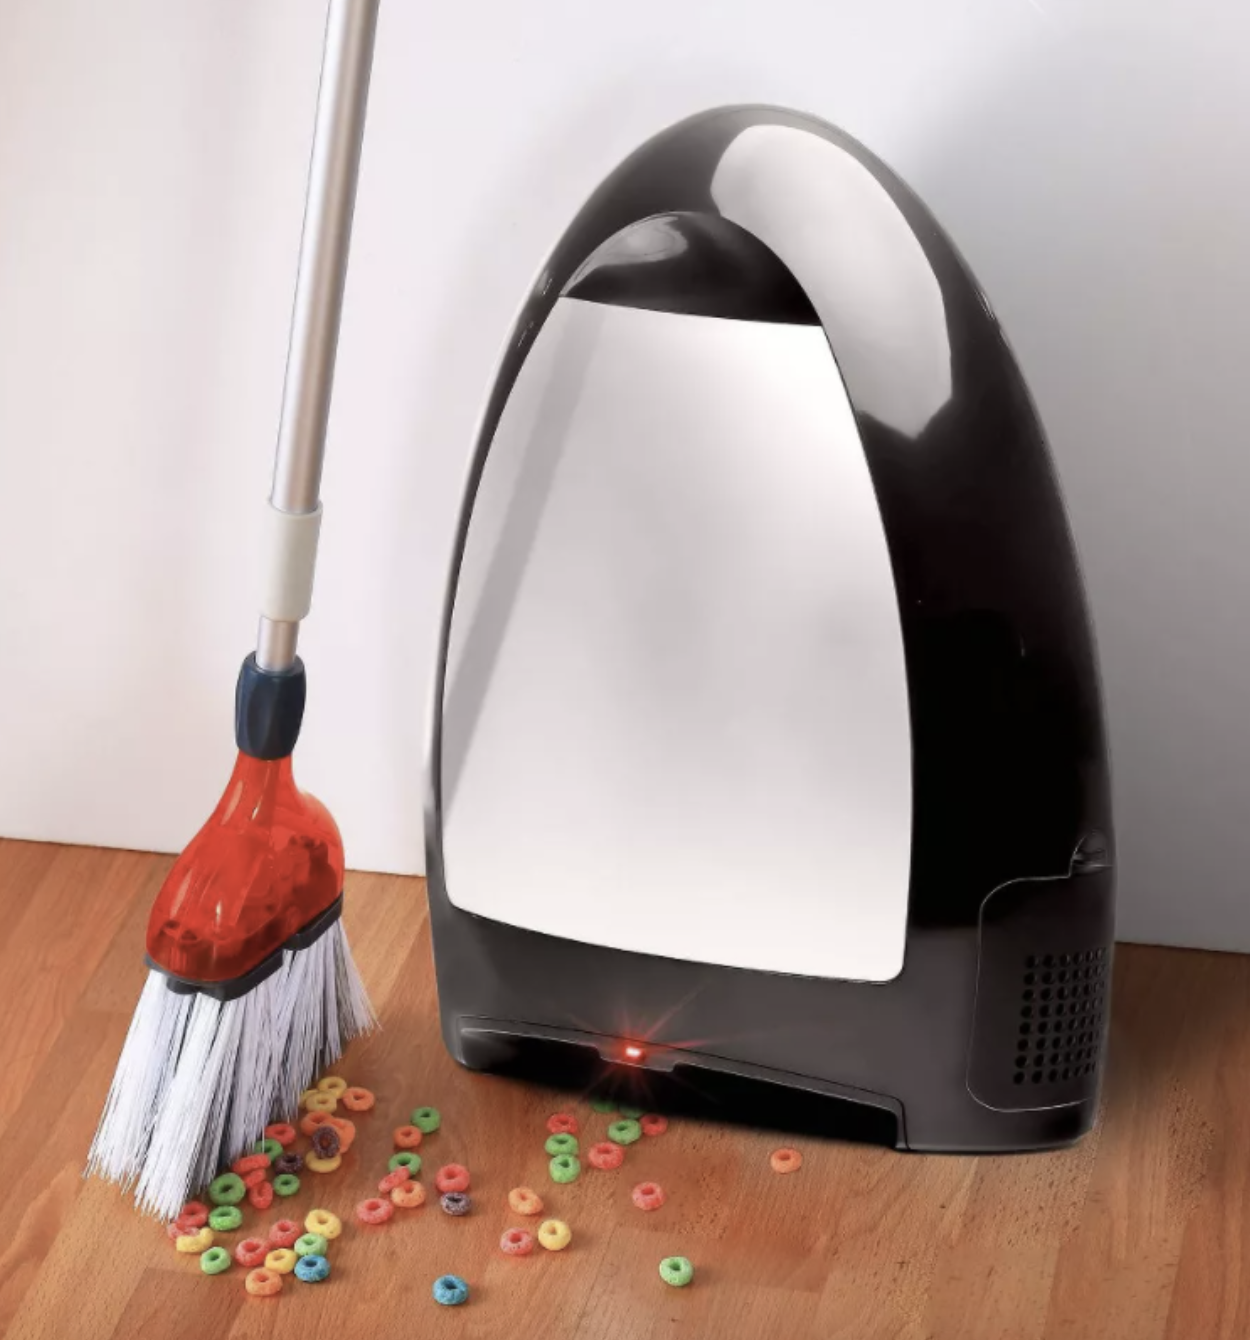 broom brushing cereal on floor into vaccuum